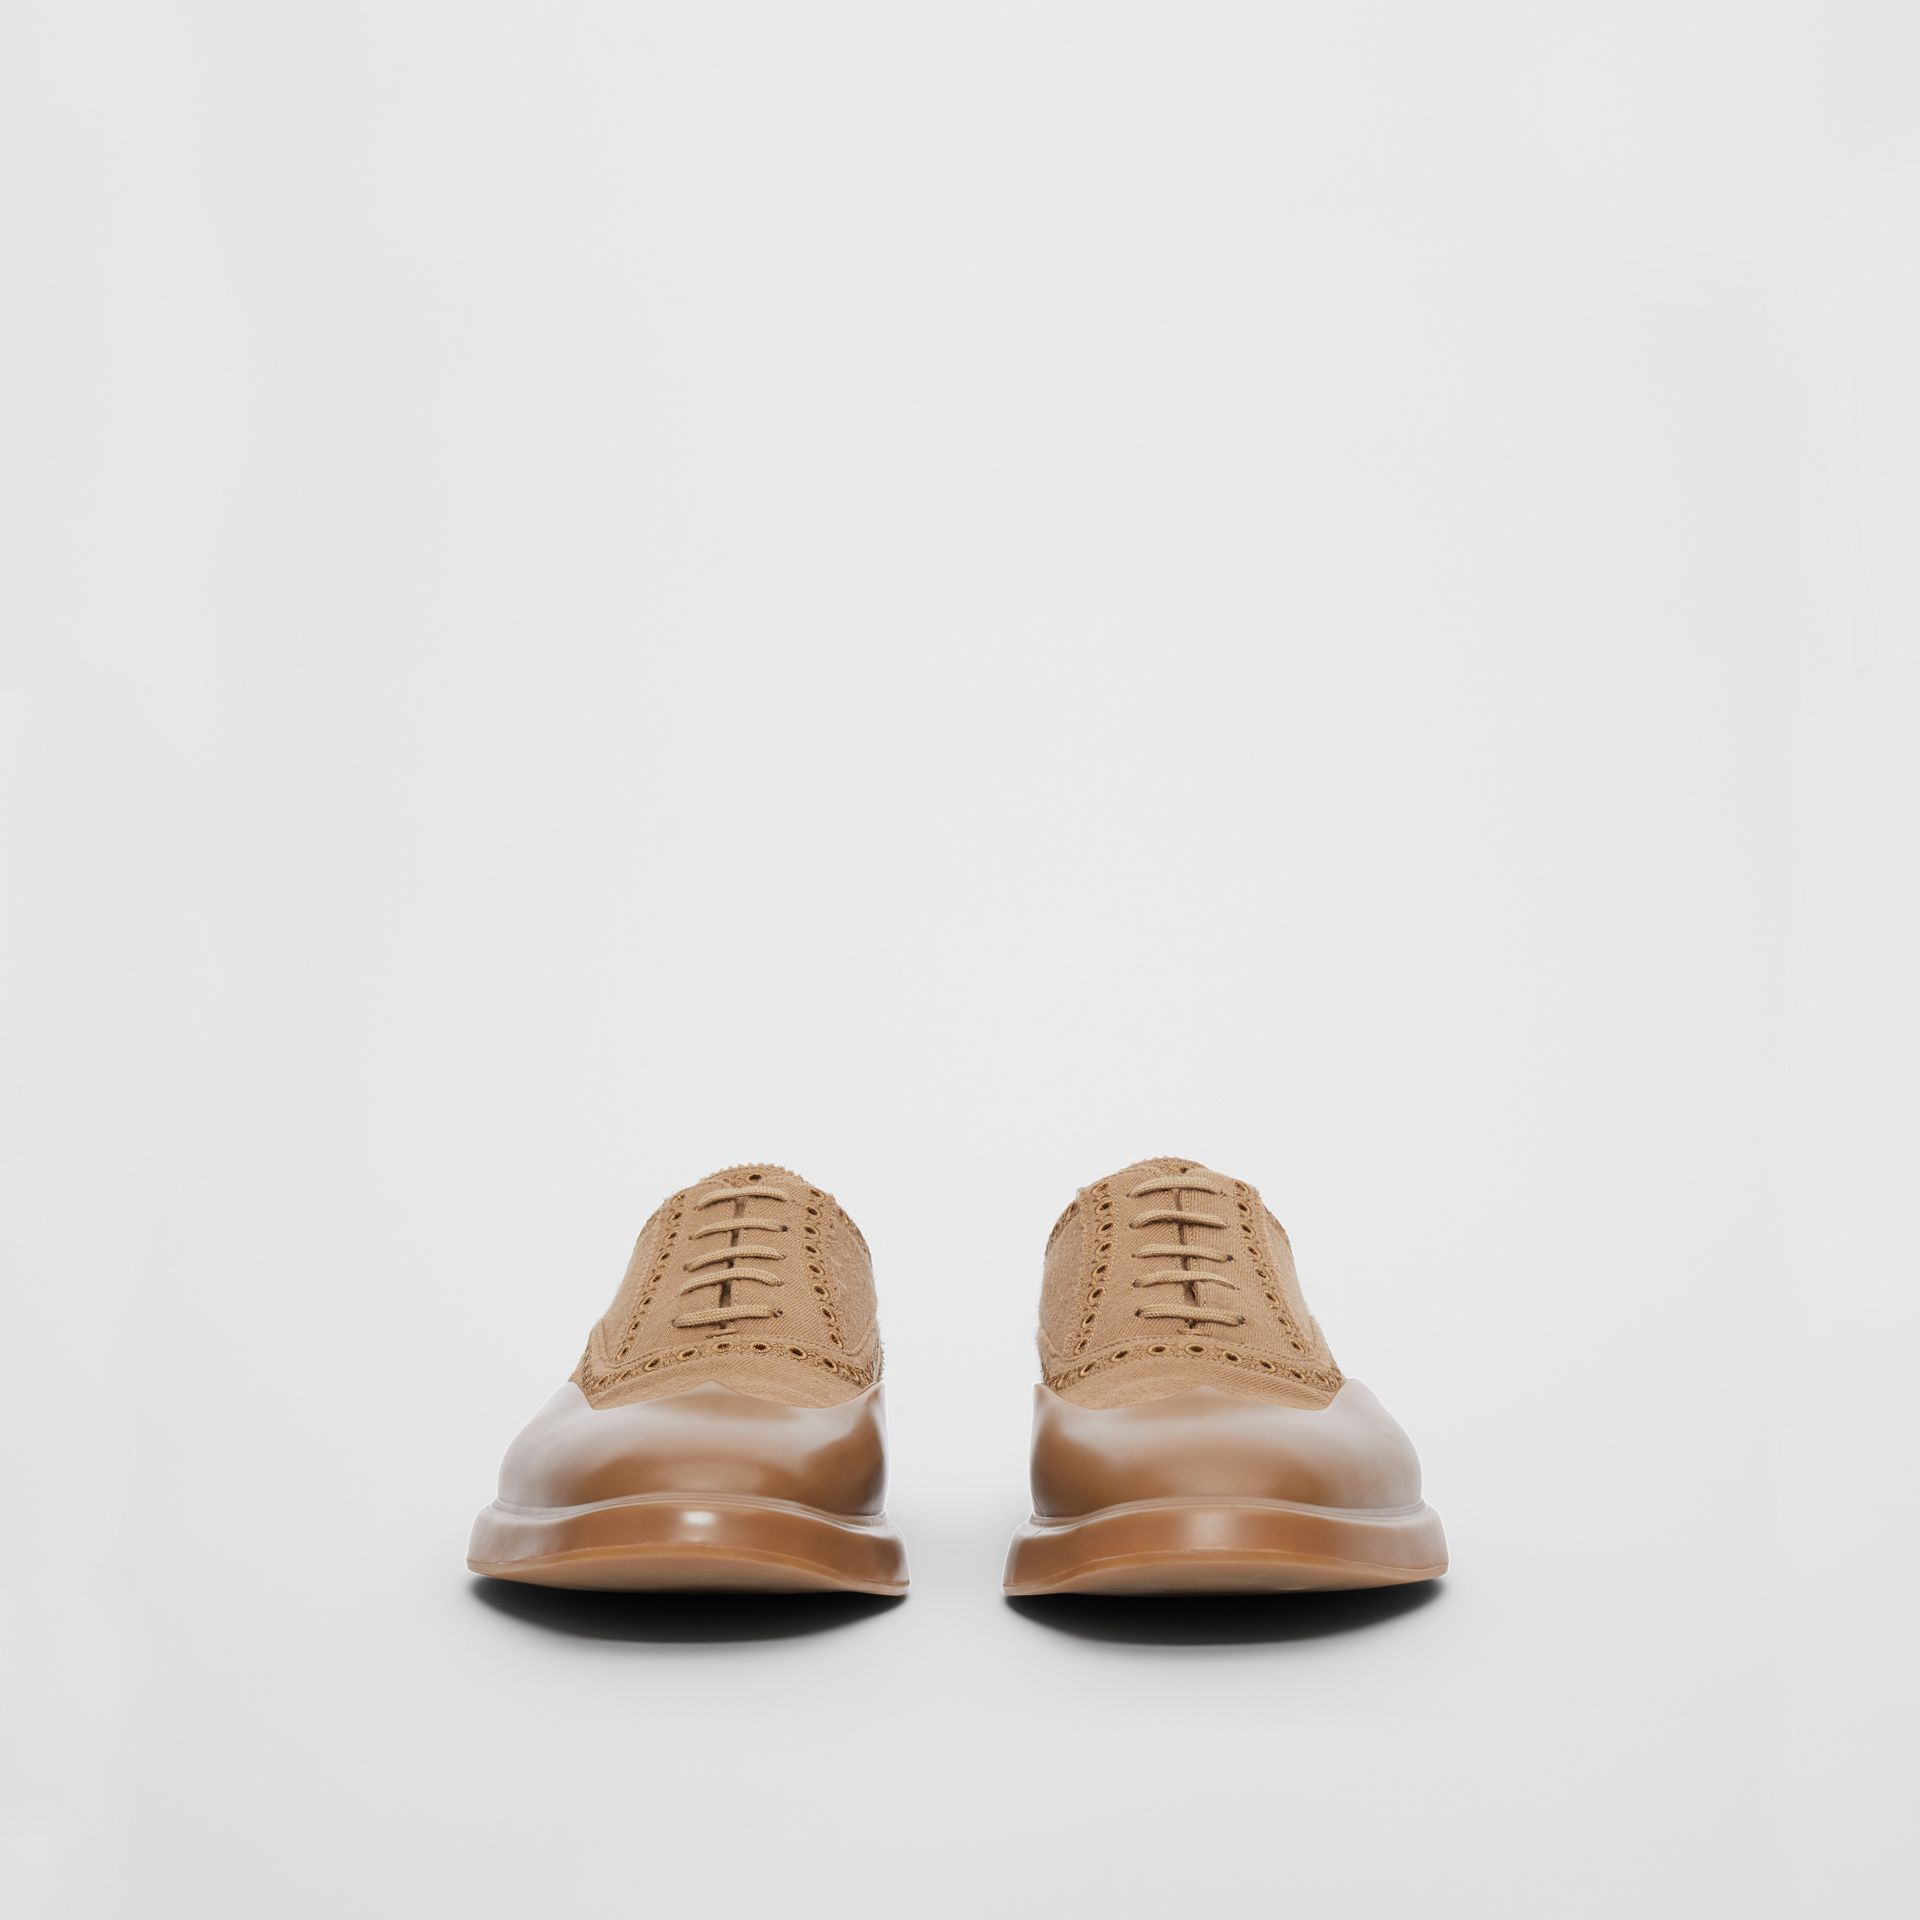 Toe Cap Detail Wool Oxford Brogues in Warm Camel - Men | Burberry - gallery image 3